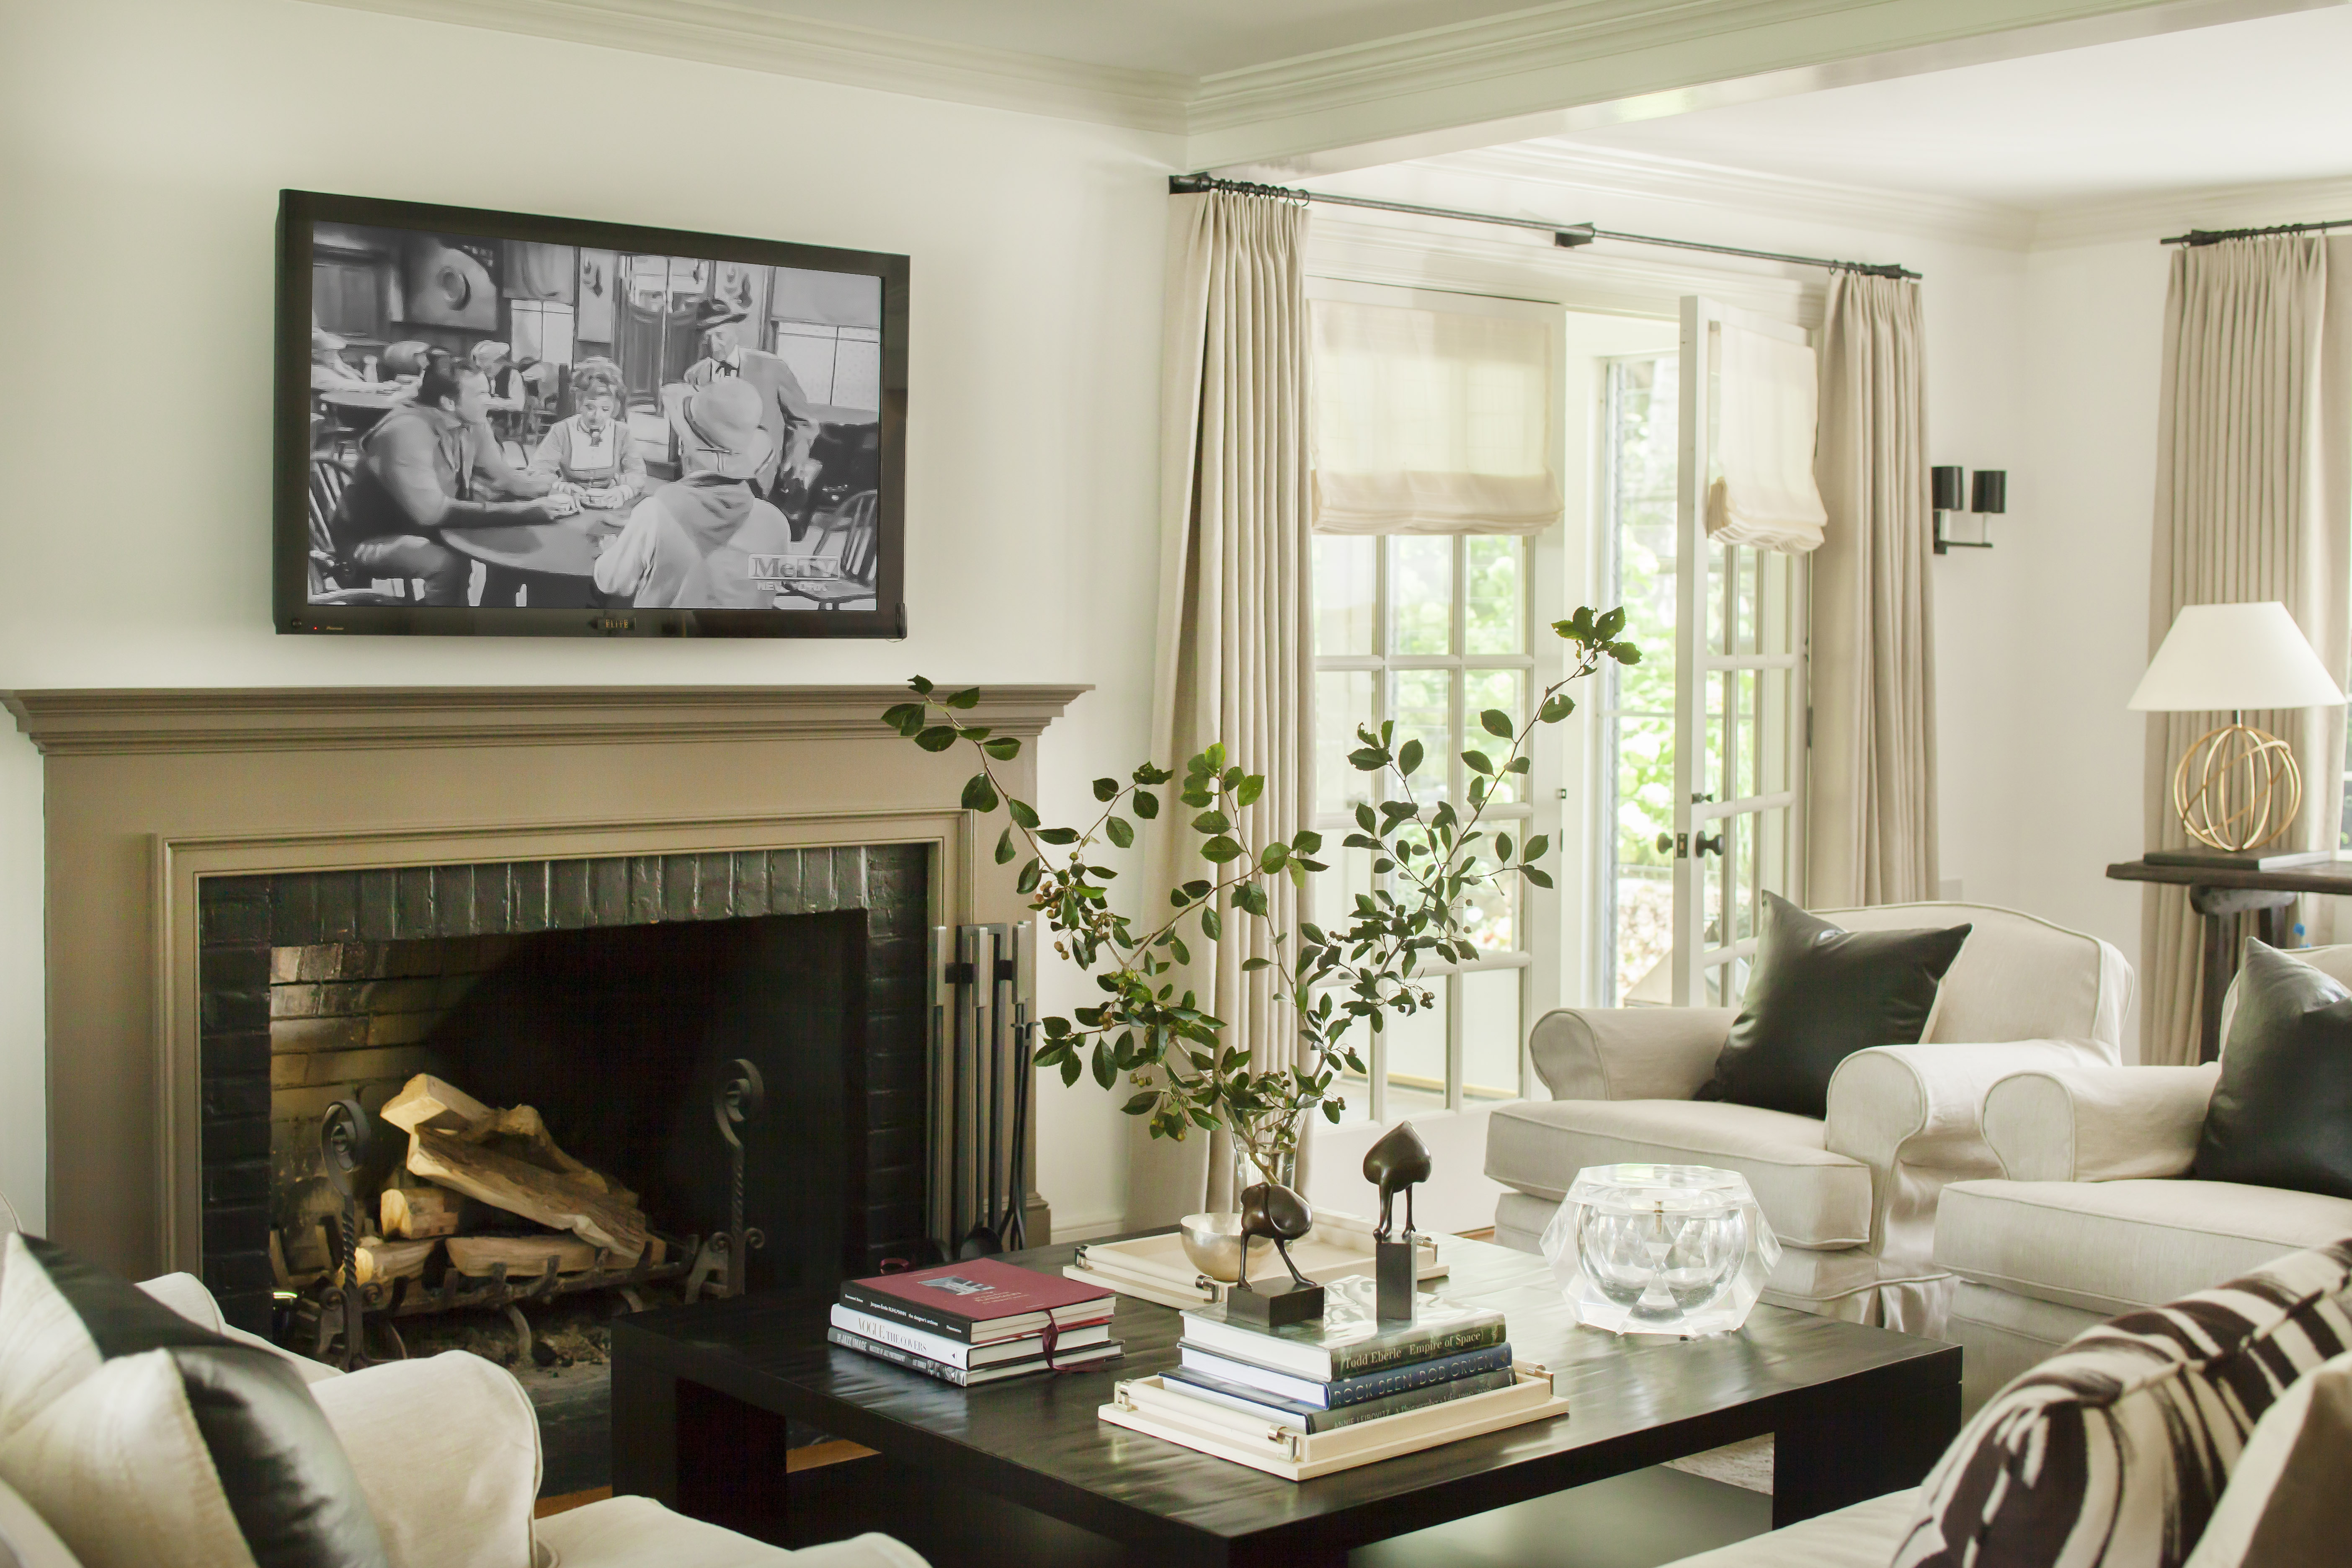 interior ct new residential designers firm winning pimlico beiles design award canaan is interiors in an